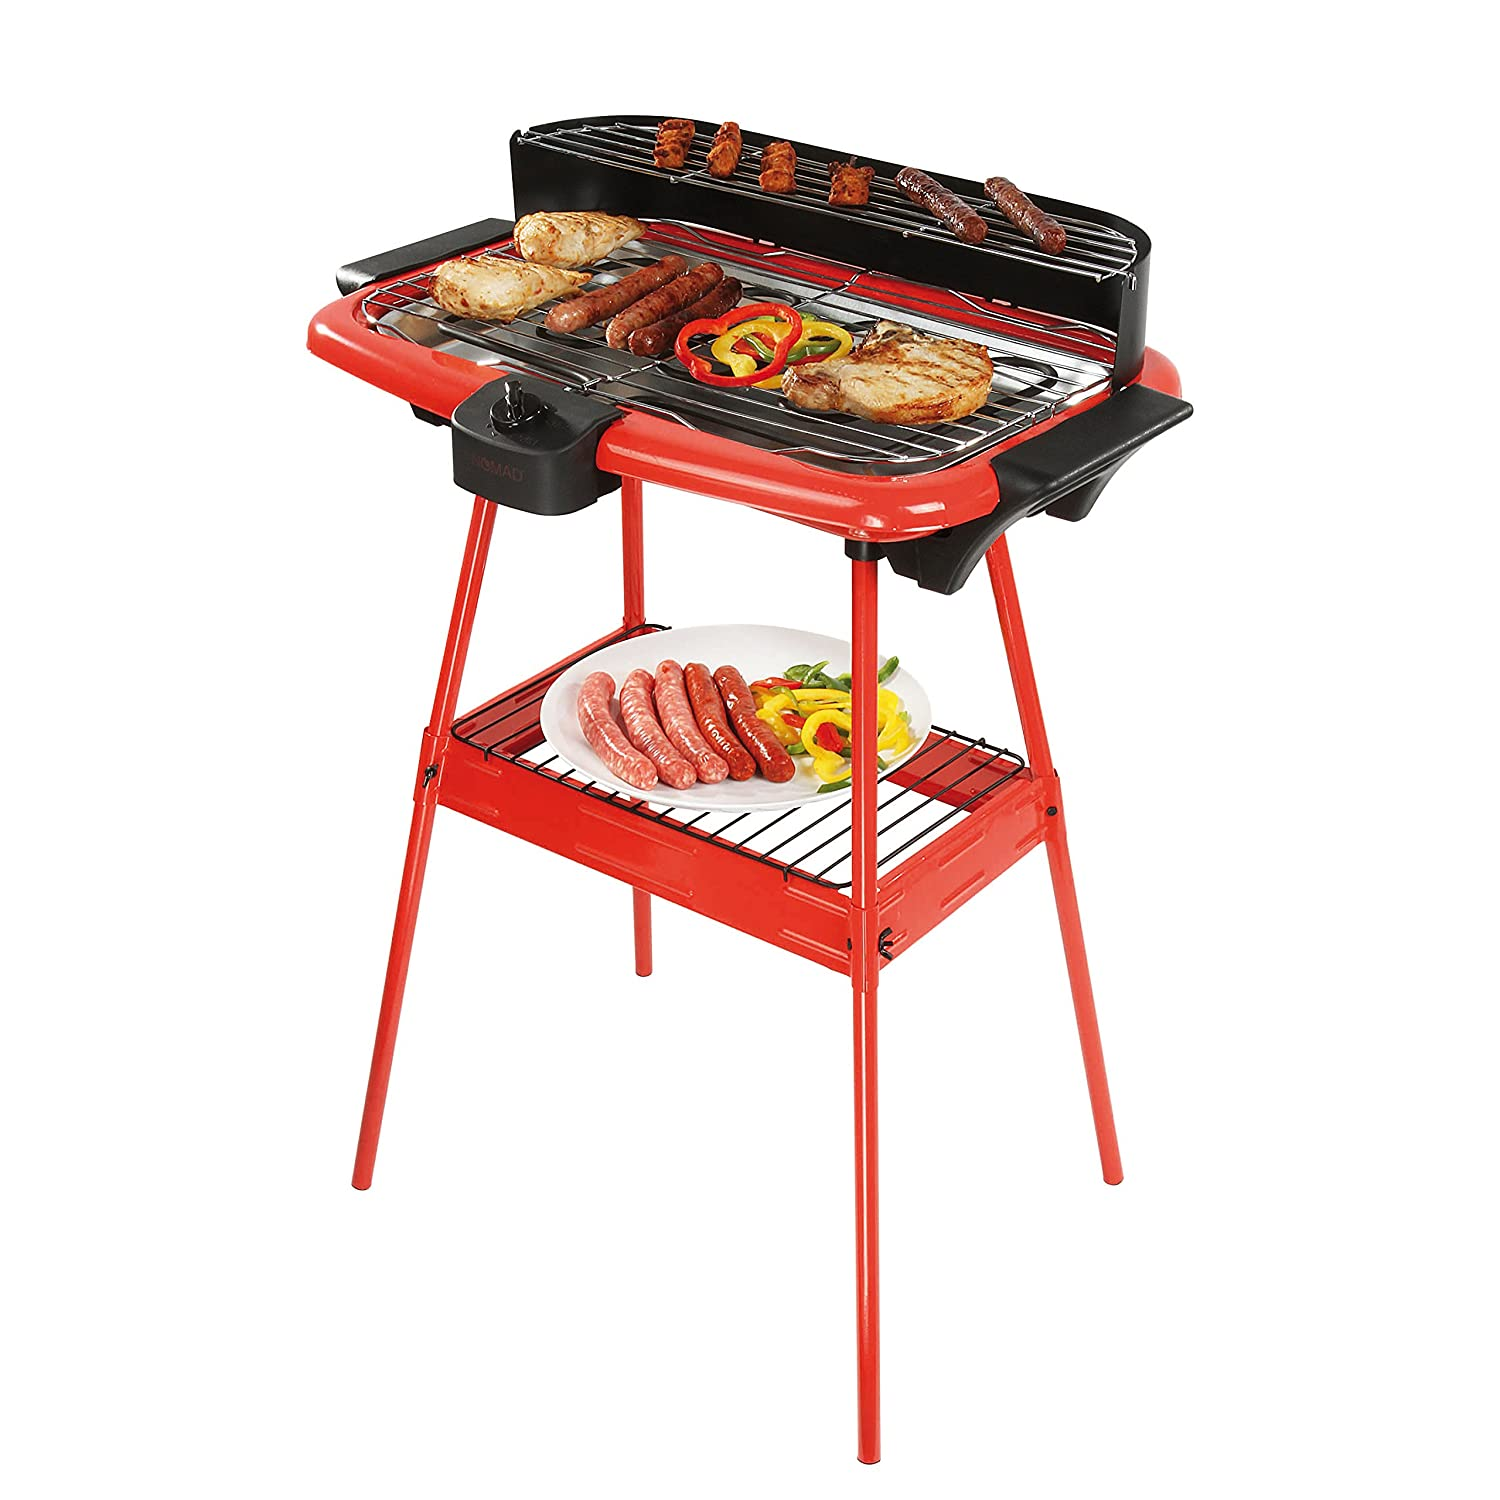 Be Nomad dom297r Standgrill, rot/schwarz BE NOMAD (BEOCK)